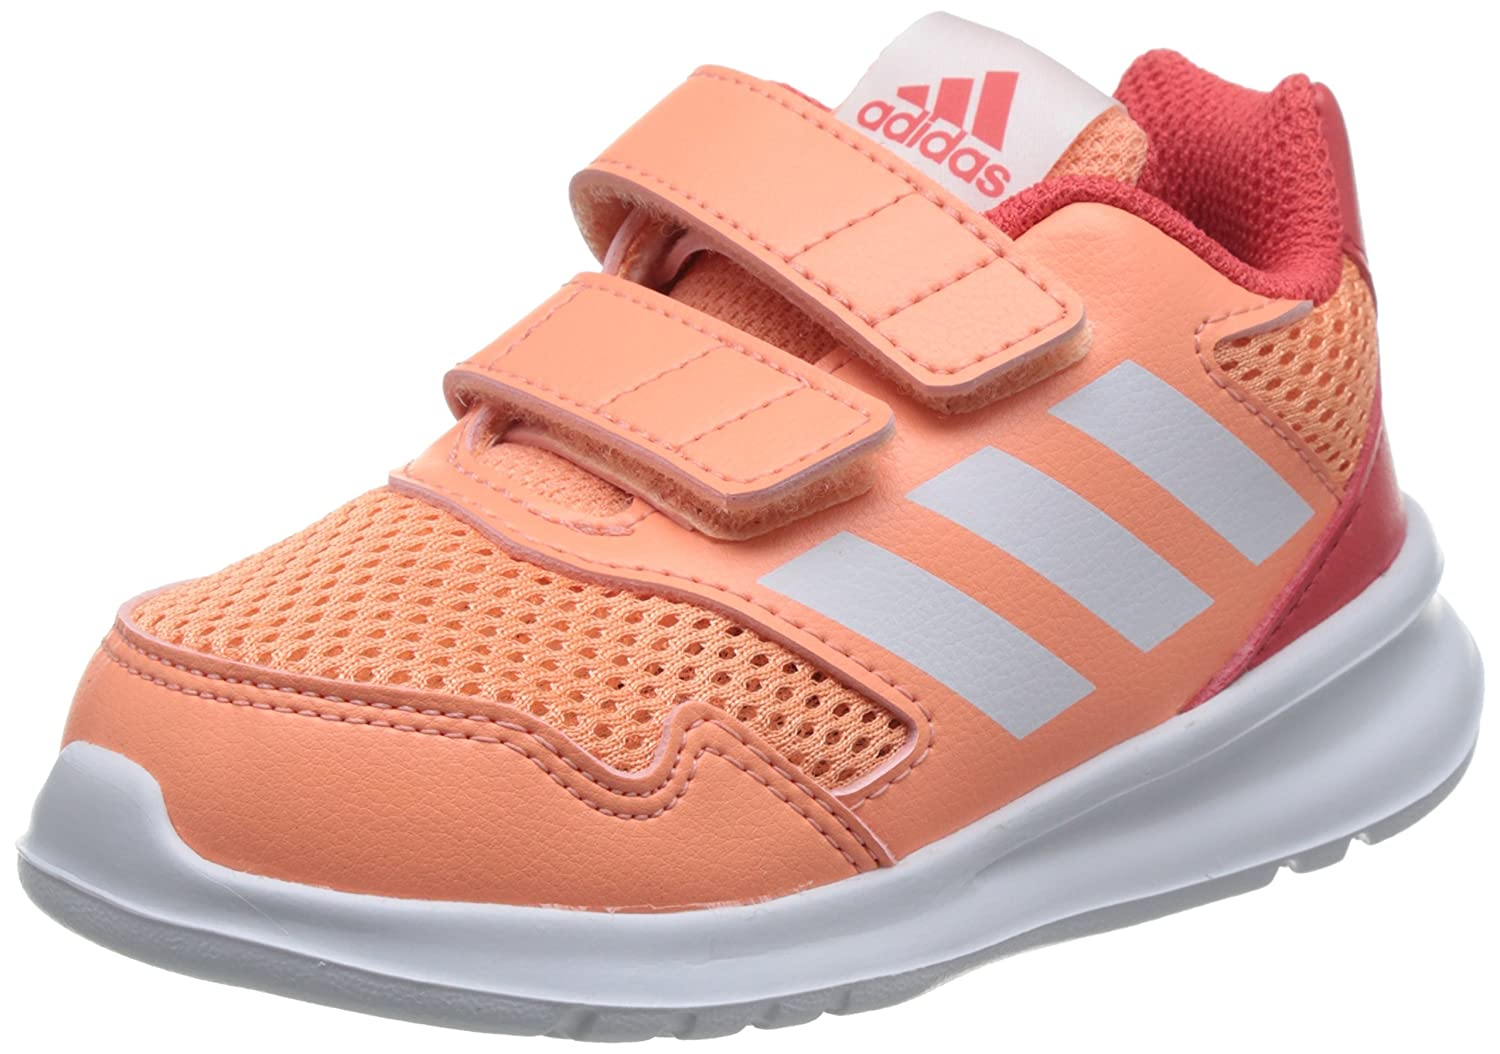 Amazon.com: adidas Infants Girls Running Shoes Kids Altarun Cloudfoam Training DA8880 Orange: Shoes